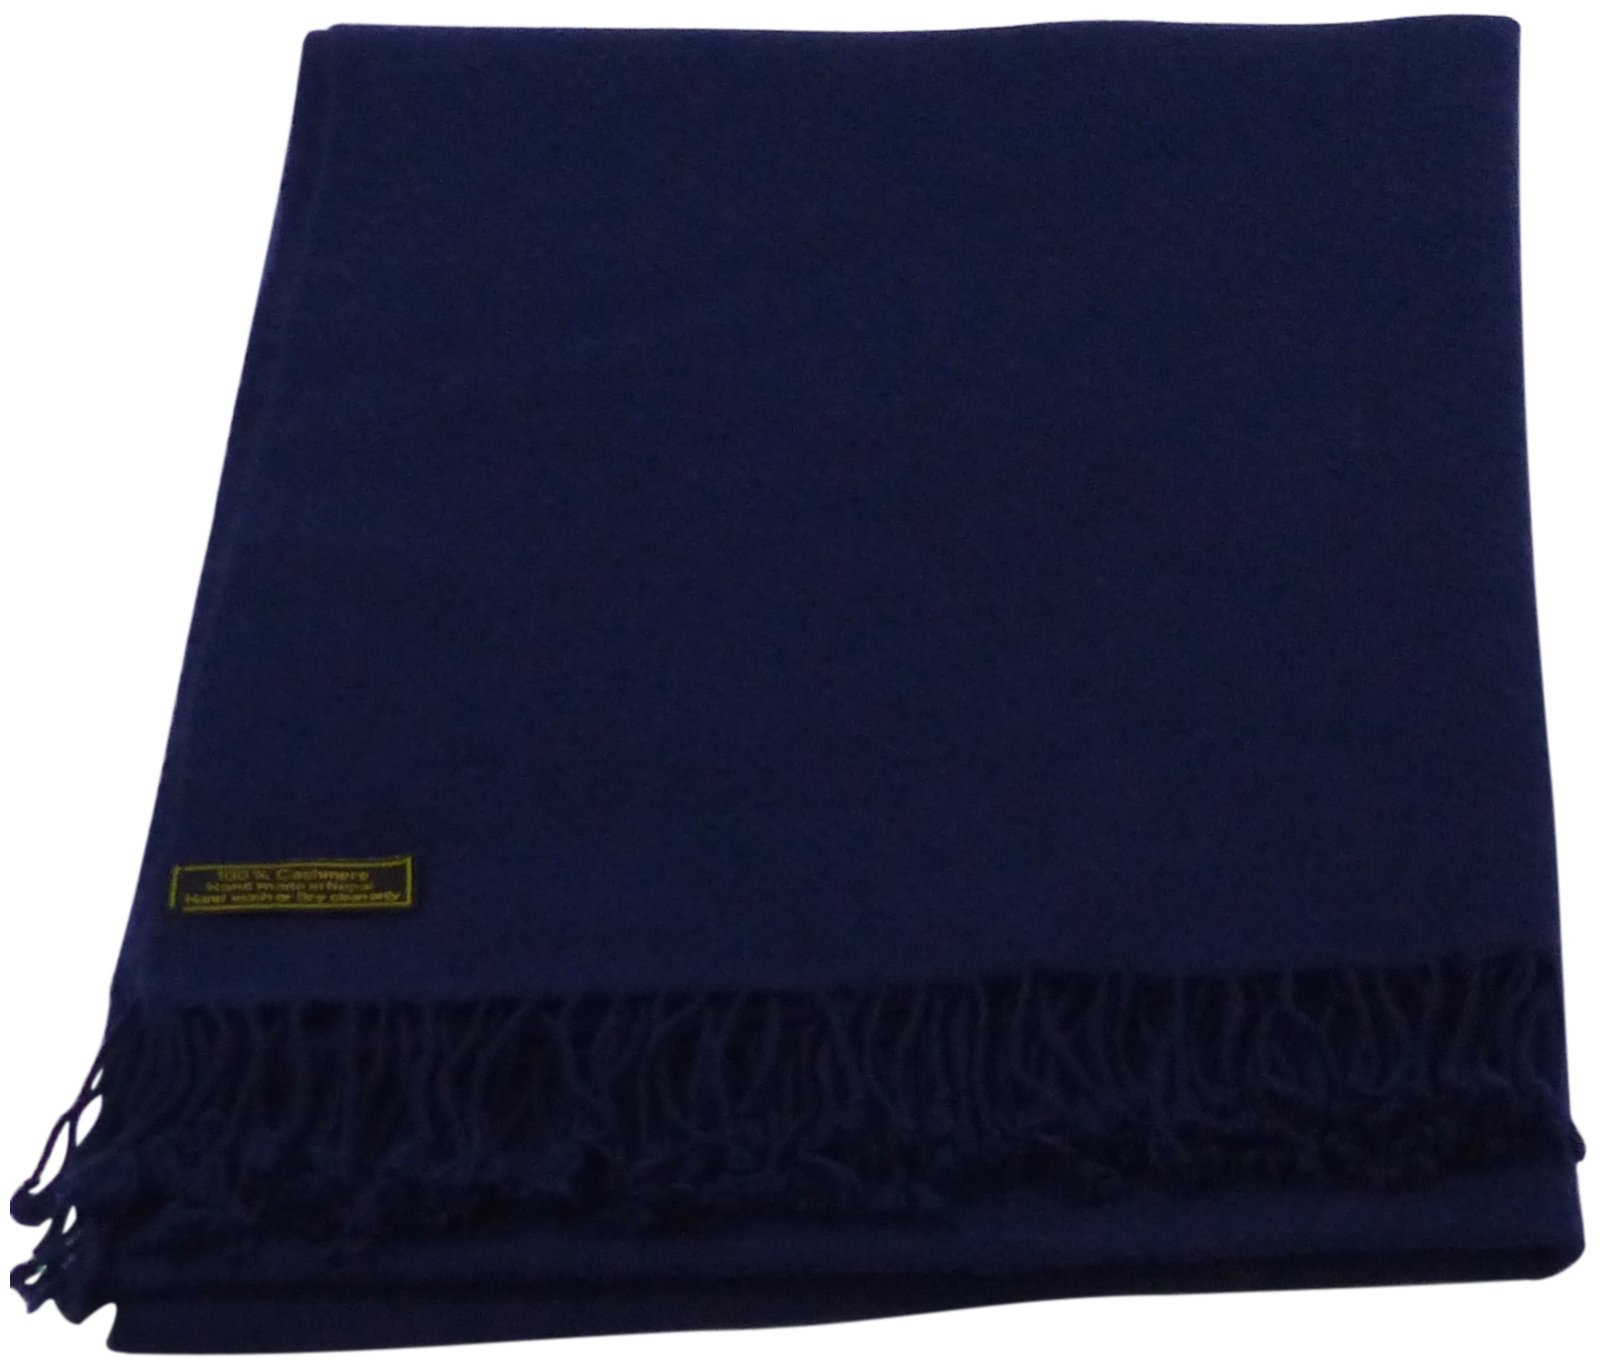 Navy Blue High Grade 100% Cashmere Shawl Scarf Hand Made in Nepal CJ Apparel NEW